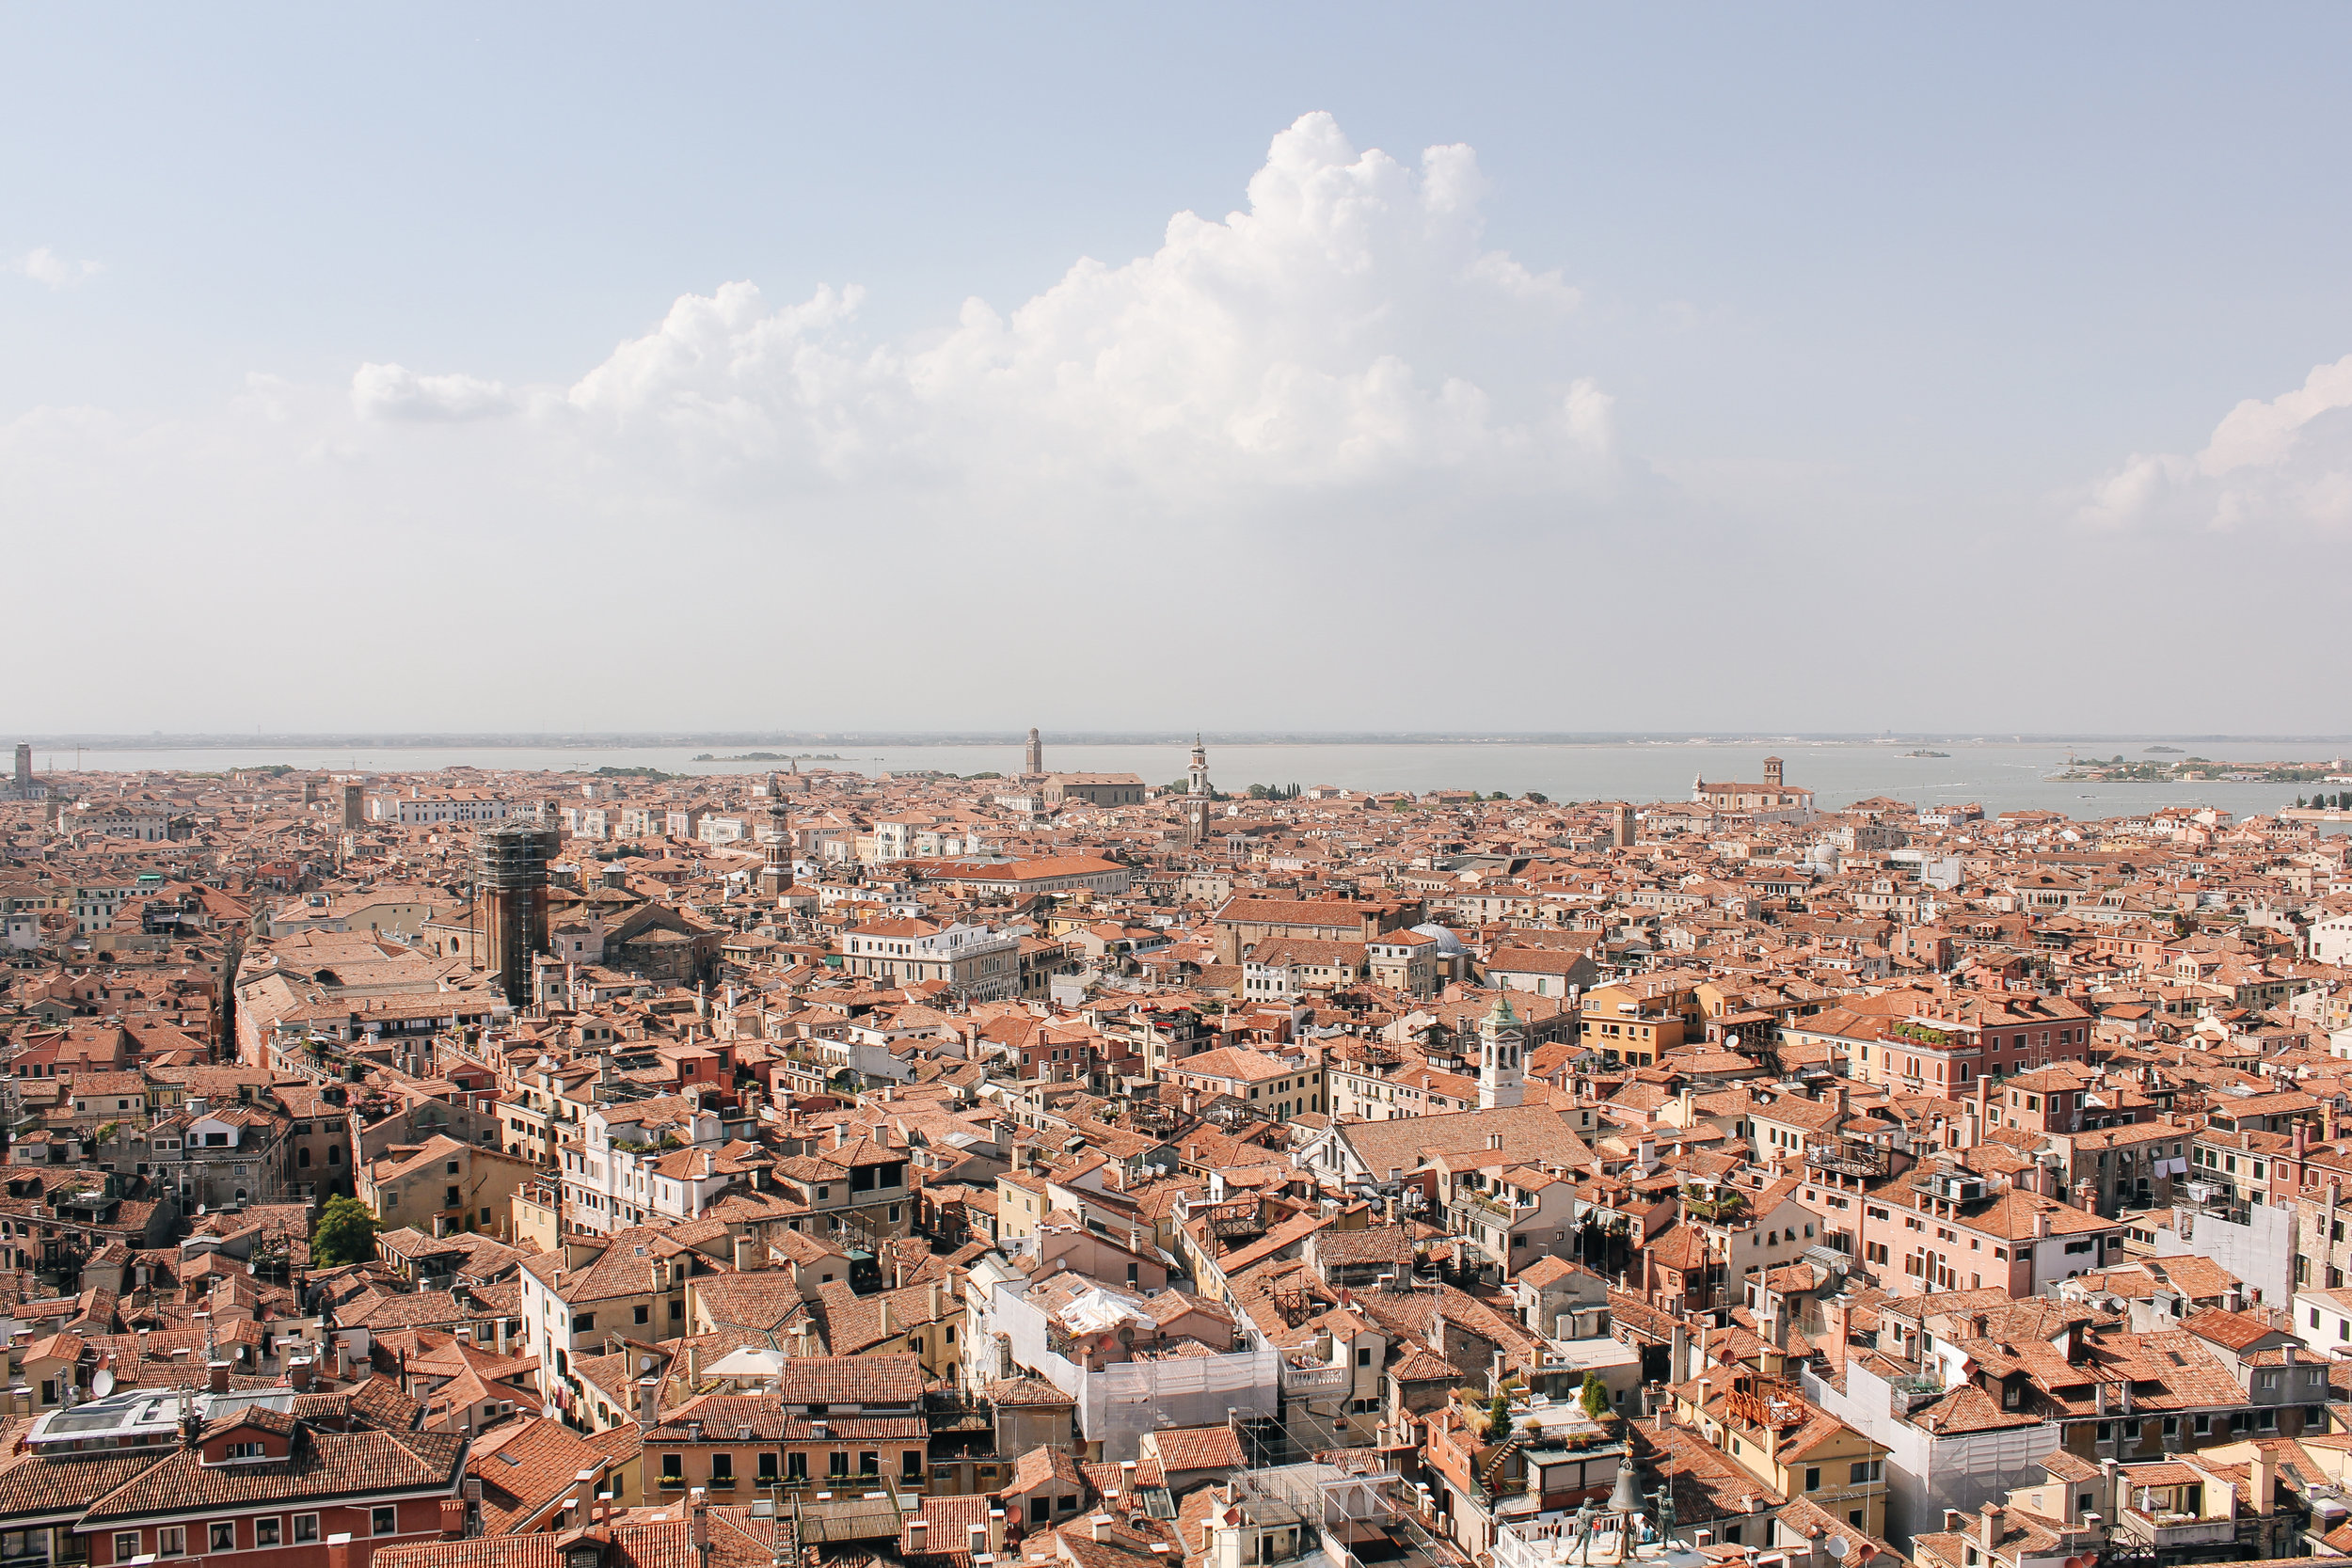 Panoramic views of Venice as seen from Campanile di San Marco